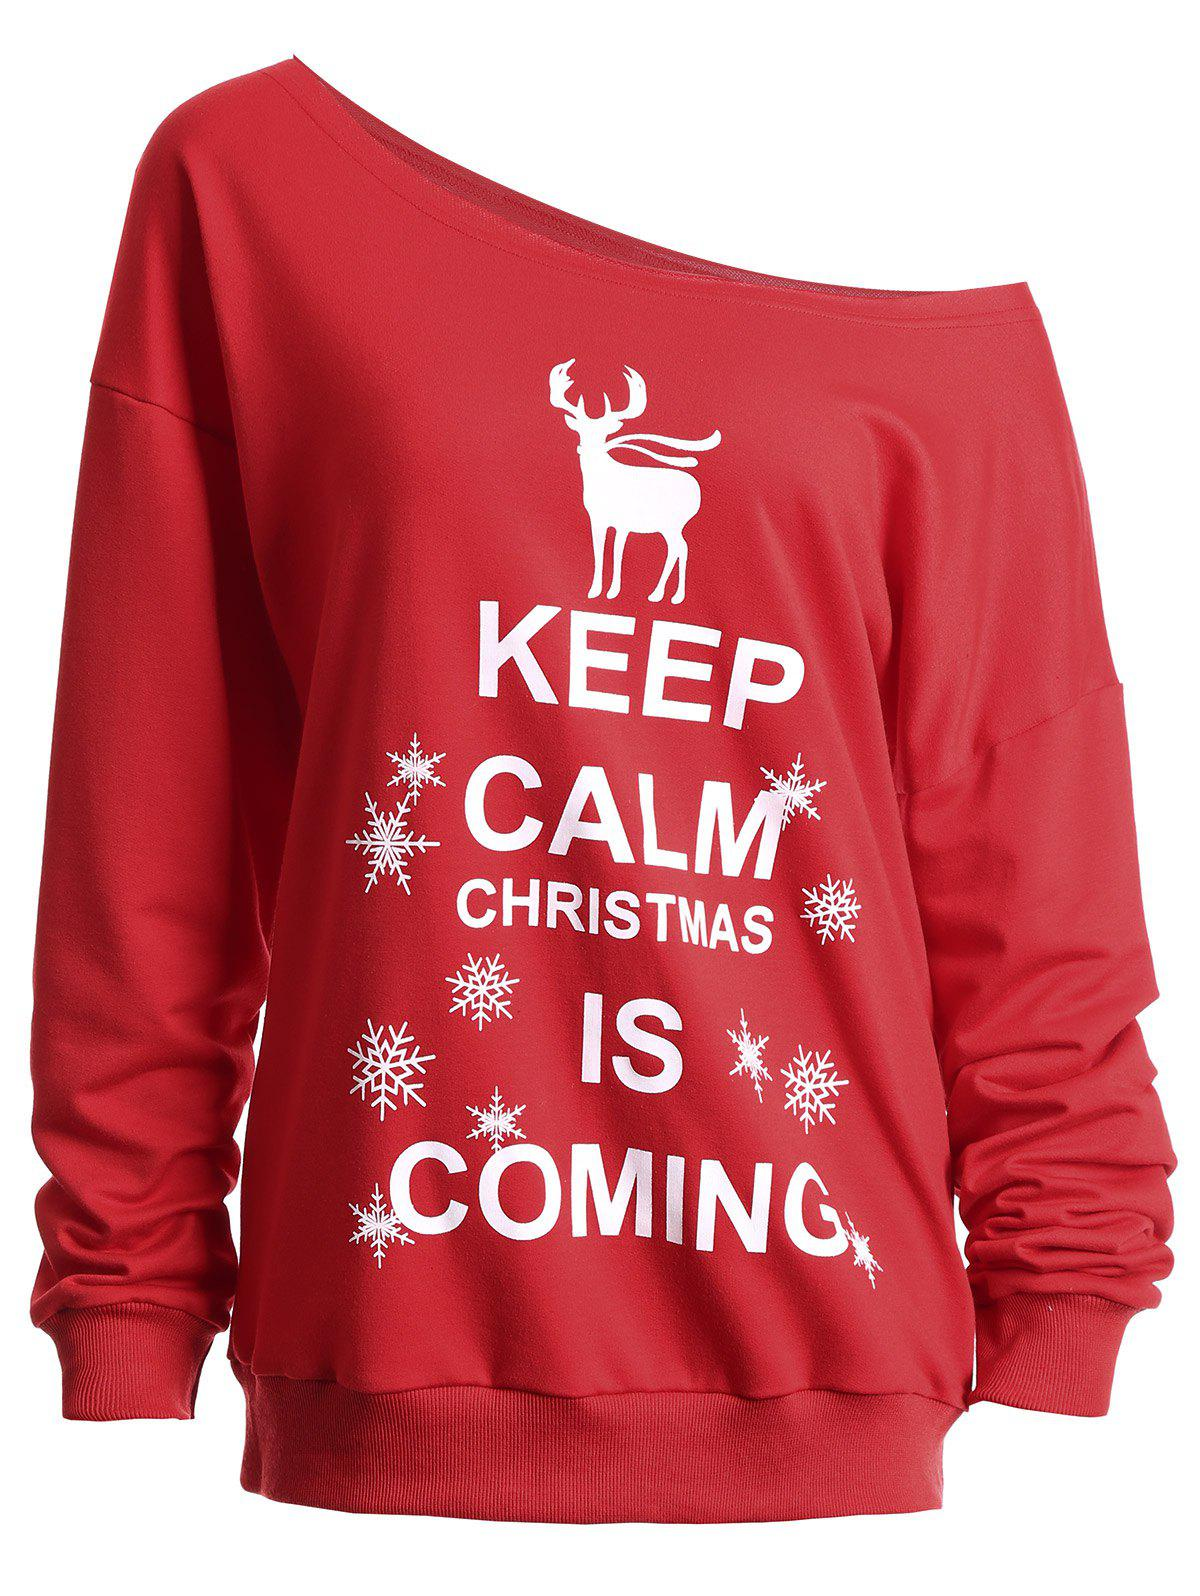 Christmas Keep Calm Skew Neck SweatshirtWOMEN<br><br>Size: XL; Color: RED; Material: Polyester; Shirt Length: Regular; Sleeve Length: Full; Style: Fashion; Pattern Style: Character,Letter,Print; Season: Fall,Spring,Winter; Weight: 0.4100kg; Package Contents: 1 x Sweatshirt;